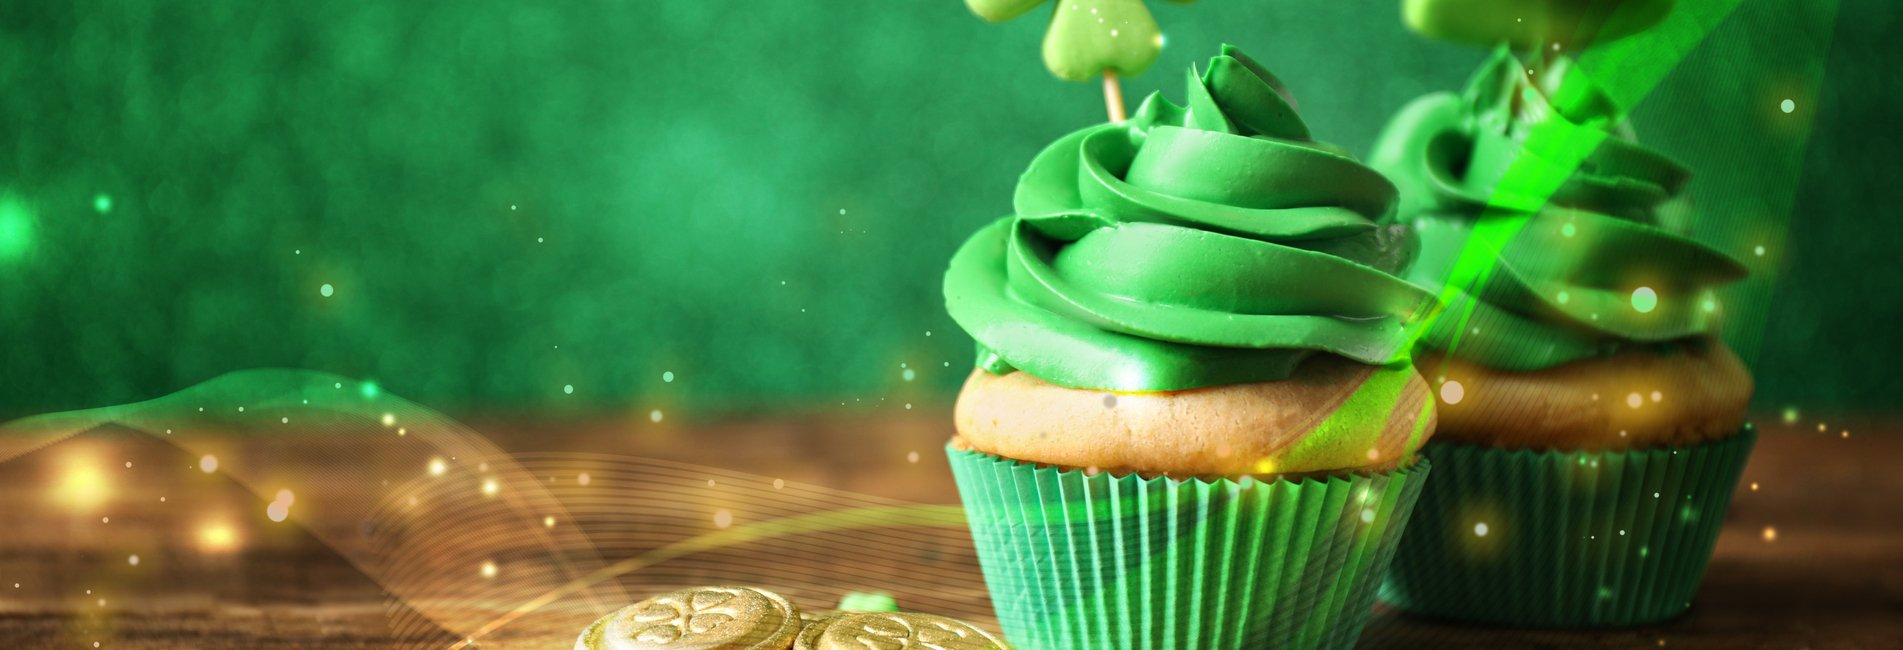 In What Ways Can You Still Have A Fun, Sober St. Patrick's Day? Resurgence - Two cupcakes sit on a table that are decorated for St. Patrick's Day as part of a fun and sober holiday celebration.